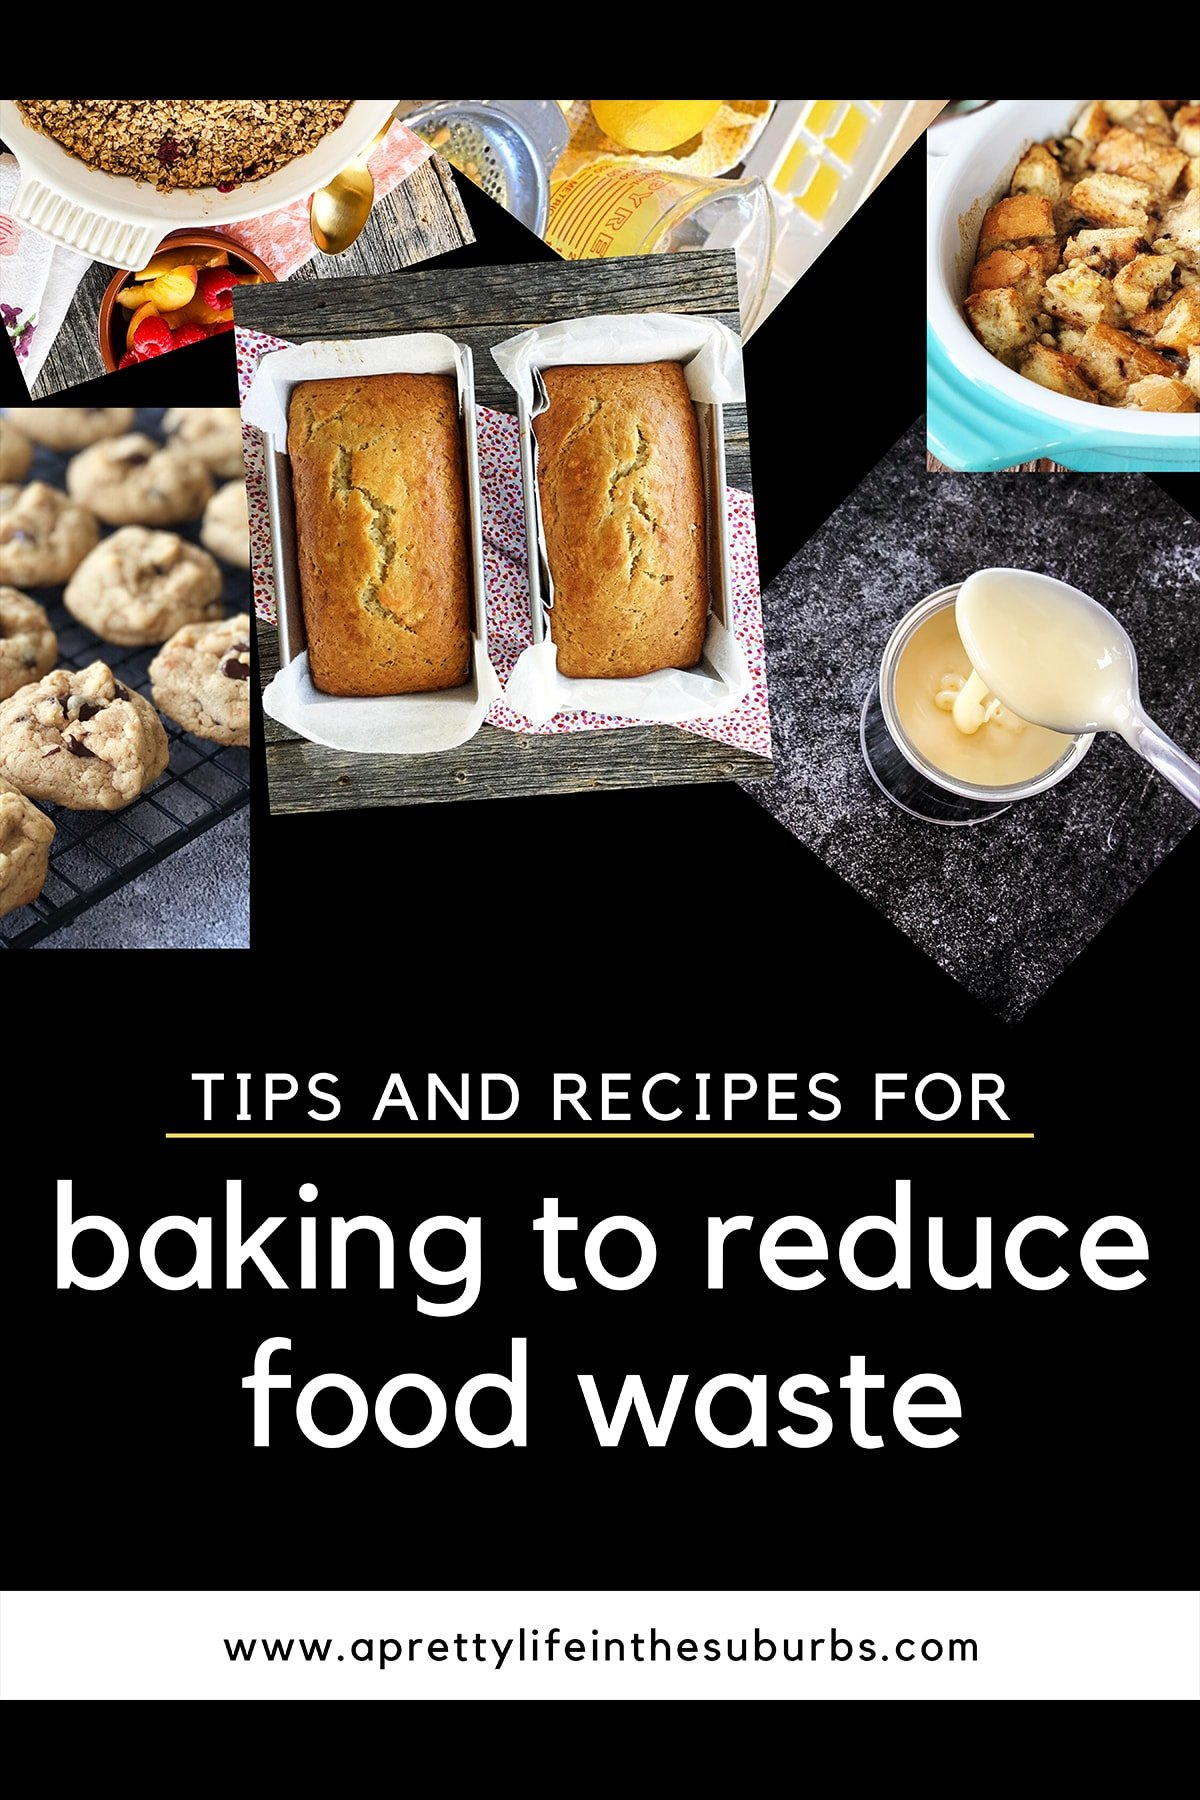 Tips and Recipes for Baking to Reduce Food Waste